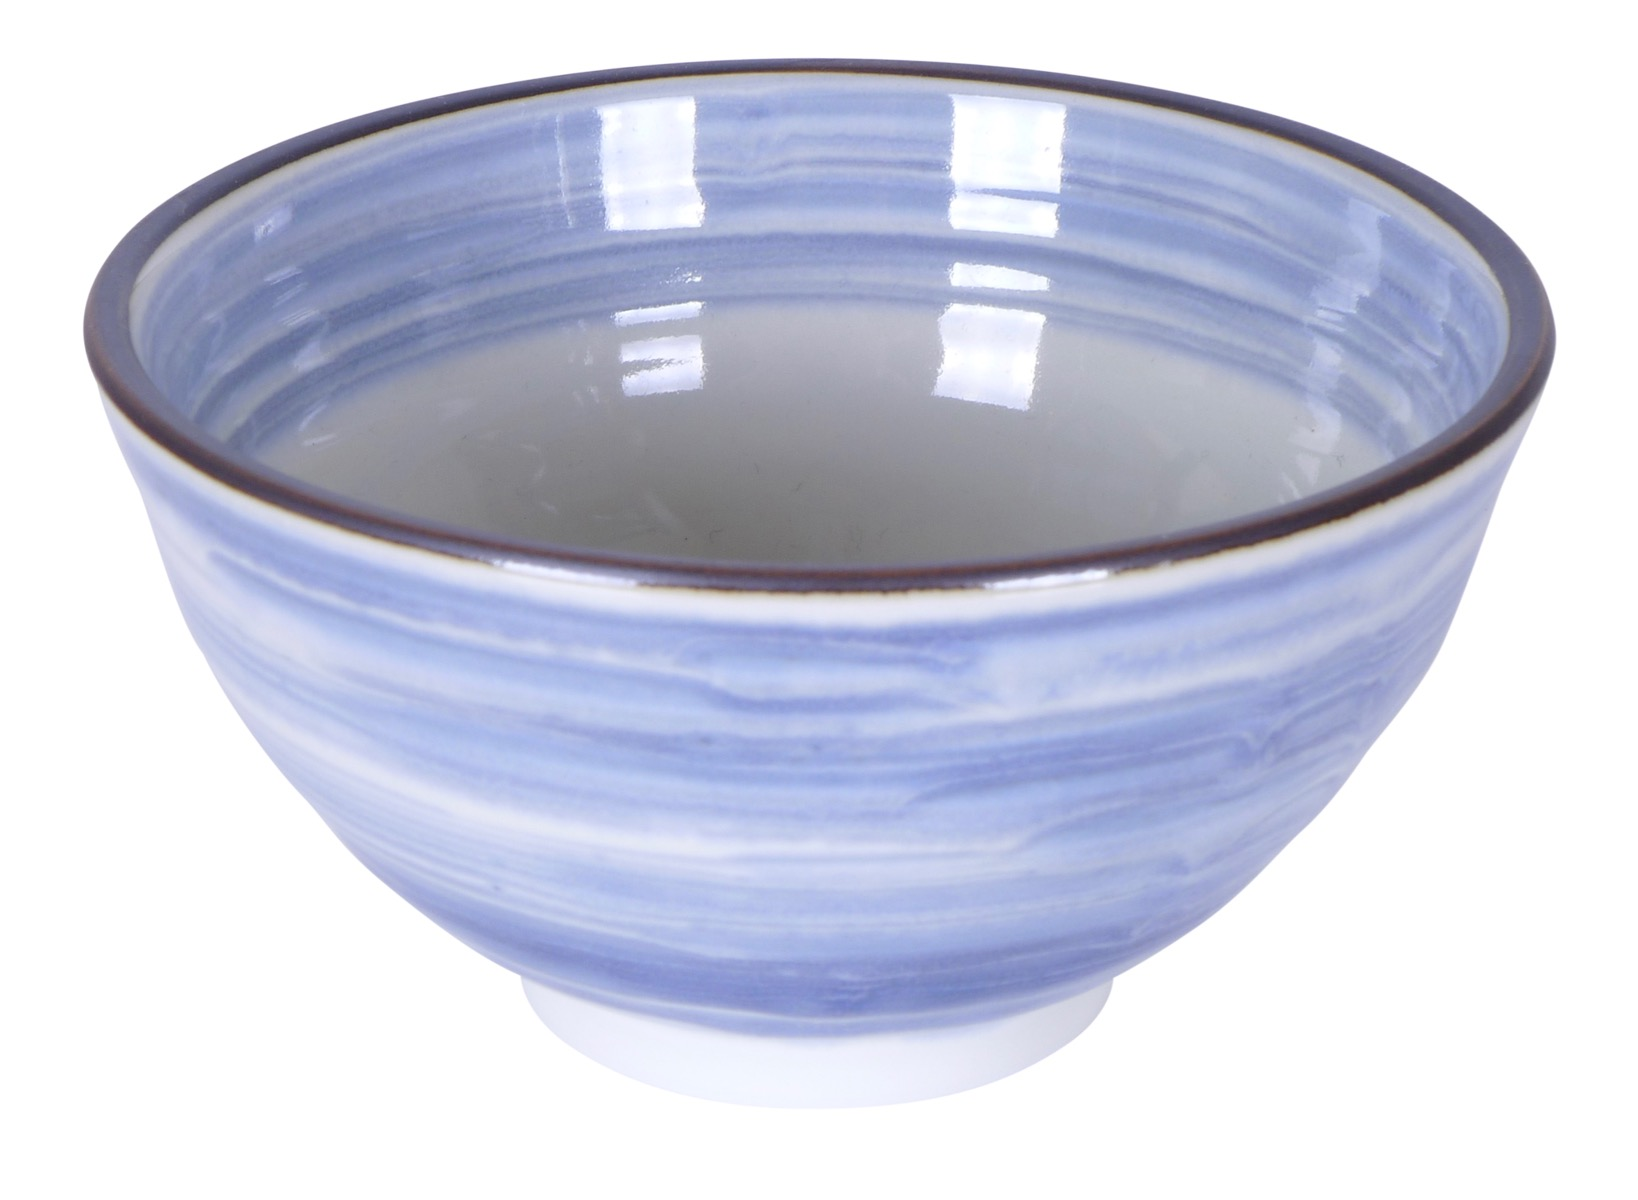 Image of Light Blue Hand Painted Porcelain Bowl 4.75x2.25-Inch